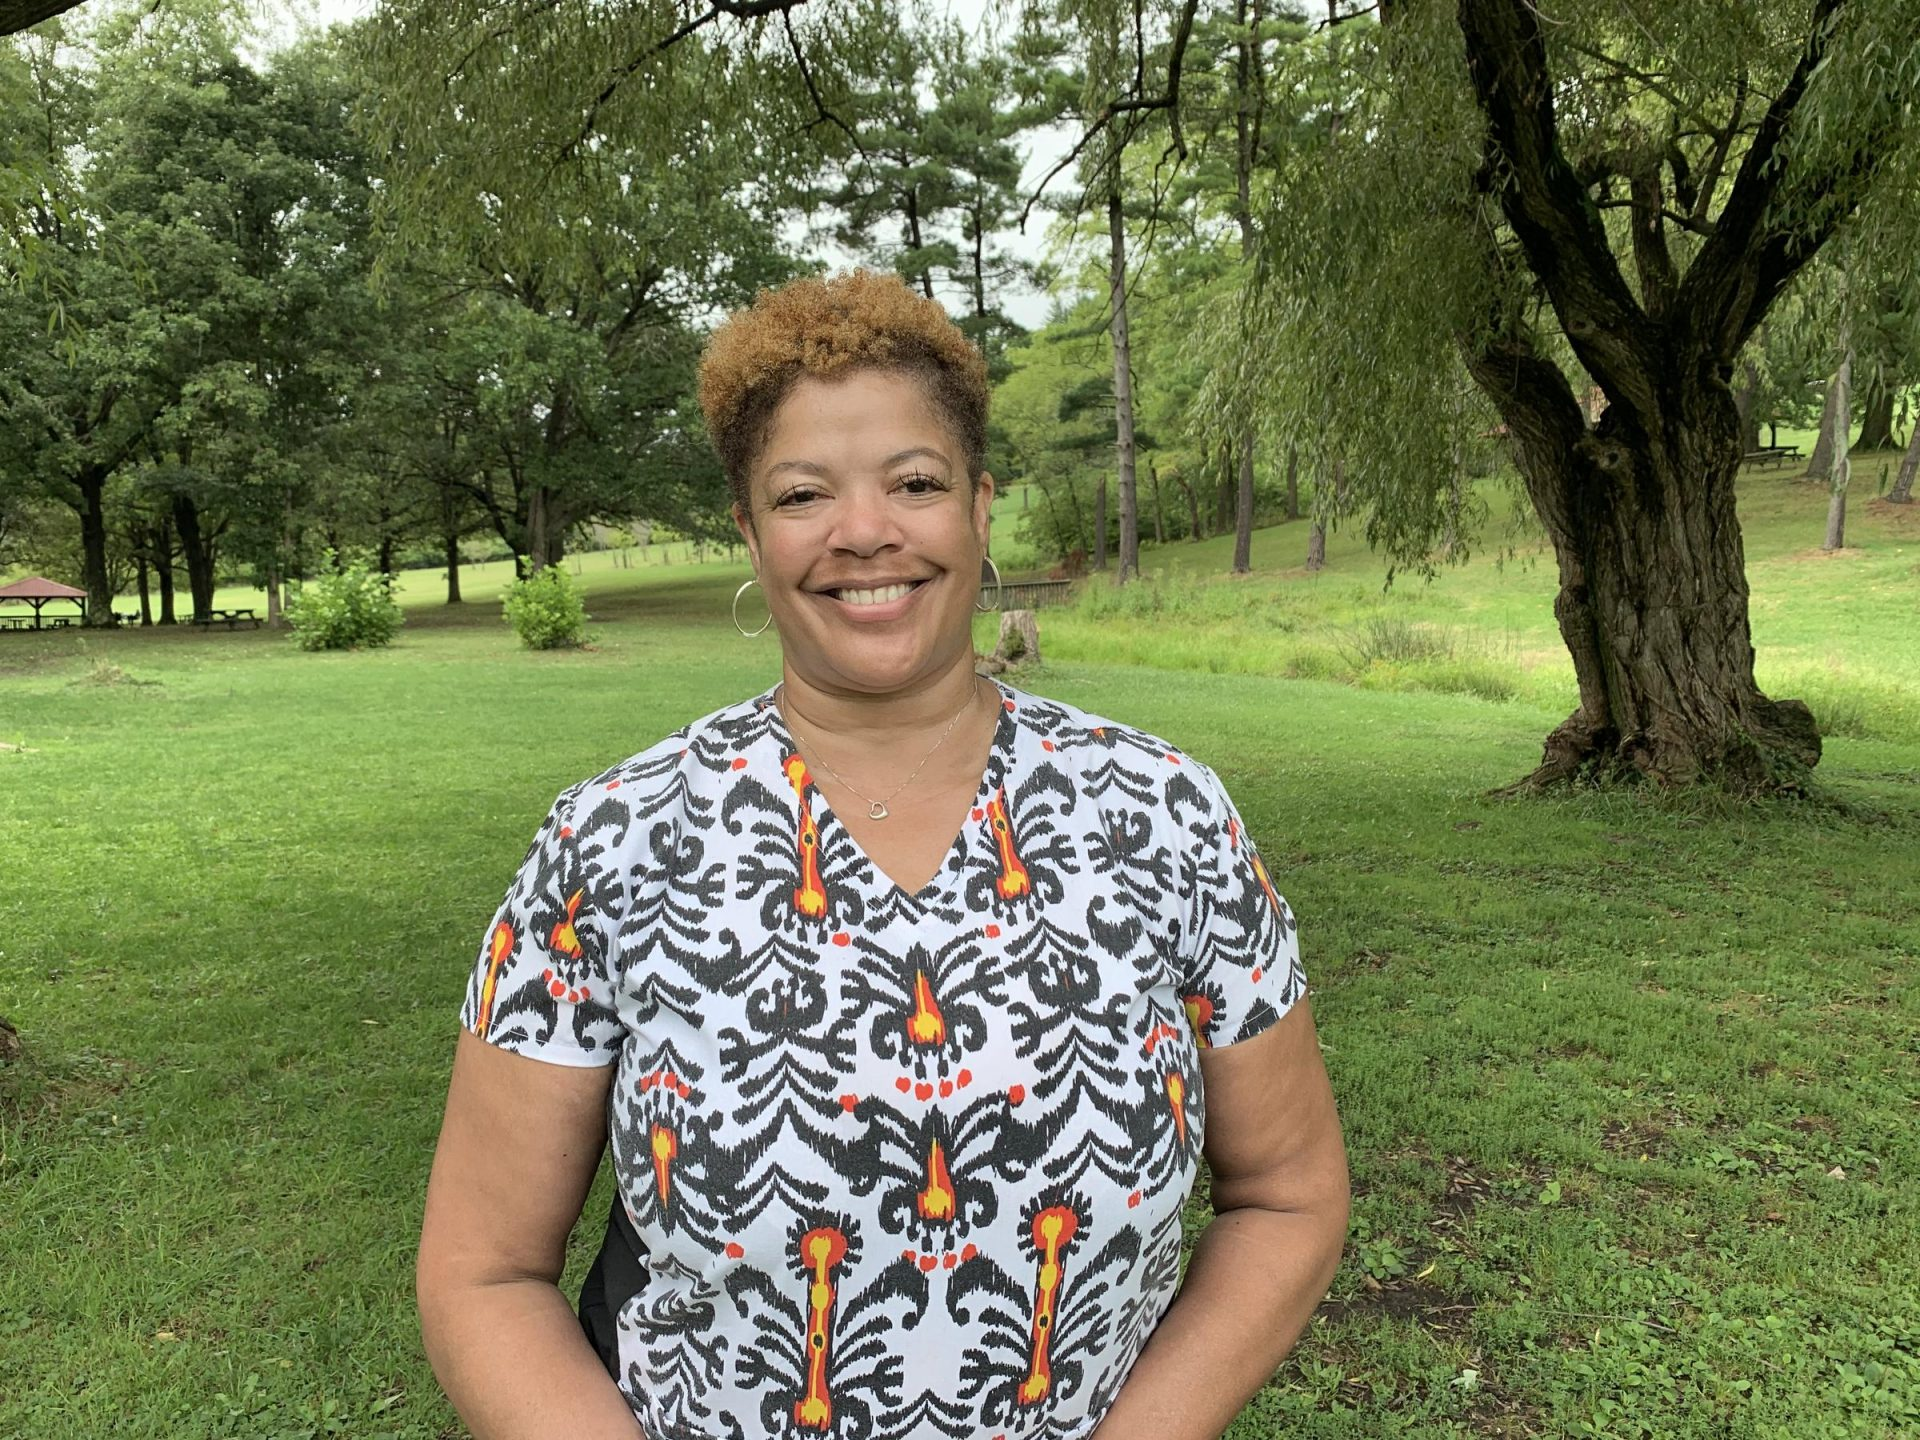 Andrea Long, of McCandless, lost her job in May. She has relied on SNAP and food banks to feed her and her son. She also works several hours a week at her church to earn extra income.